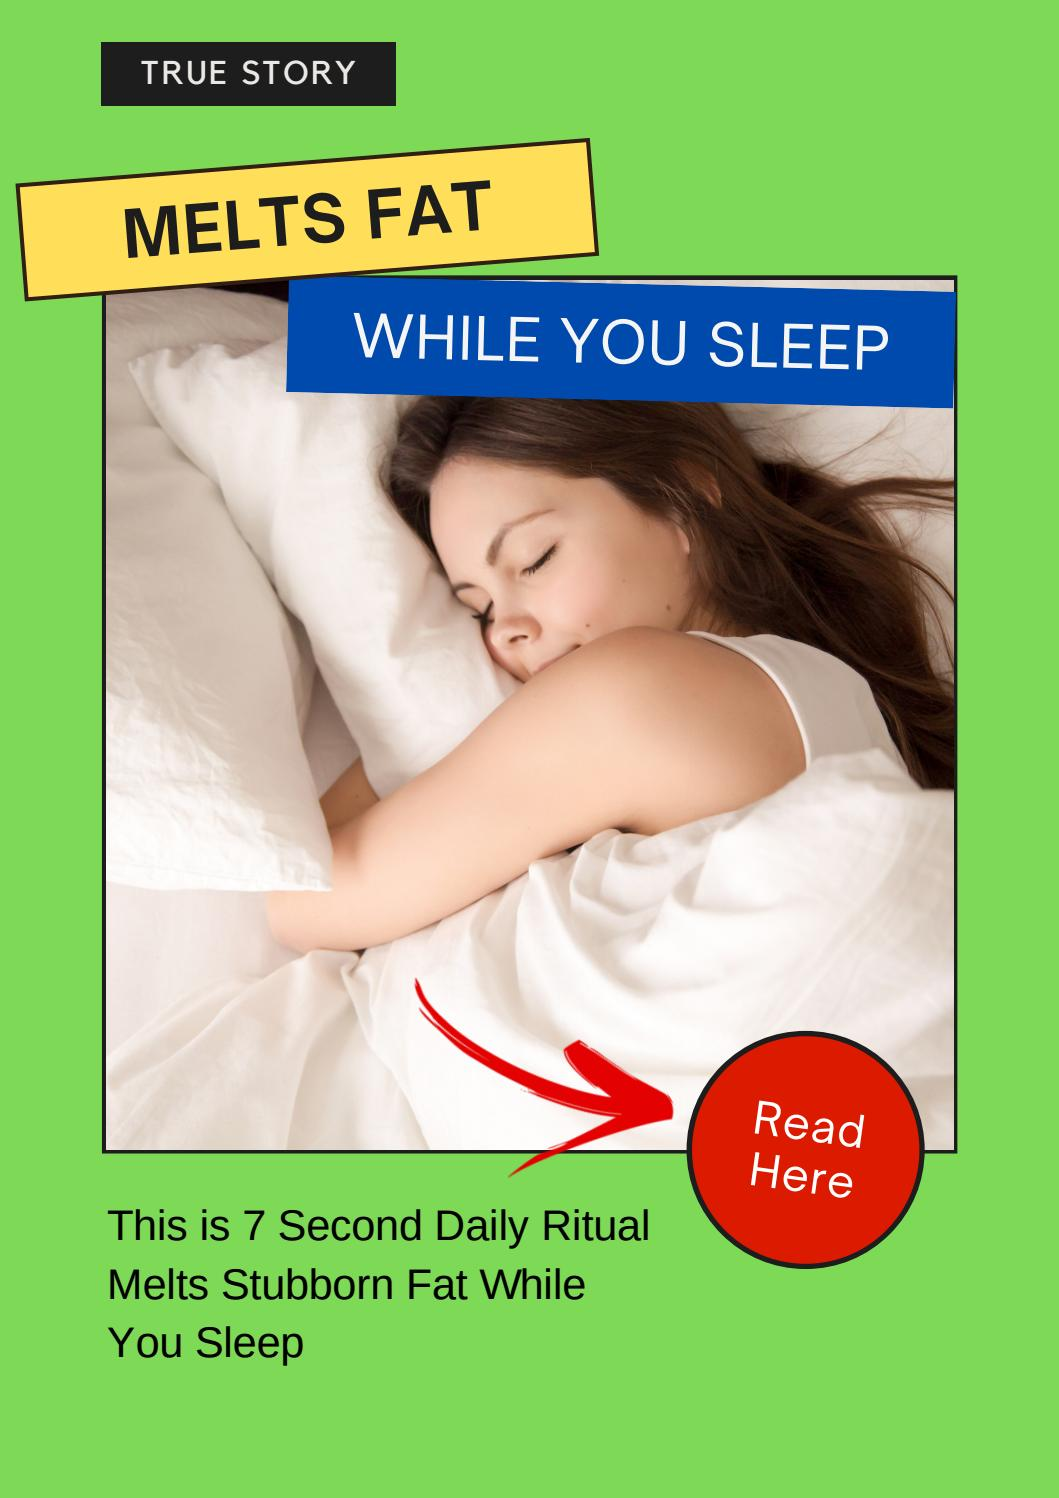 Bedtime drink how to lose belly fat overnight drink by idzwanfikri